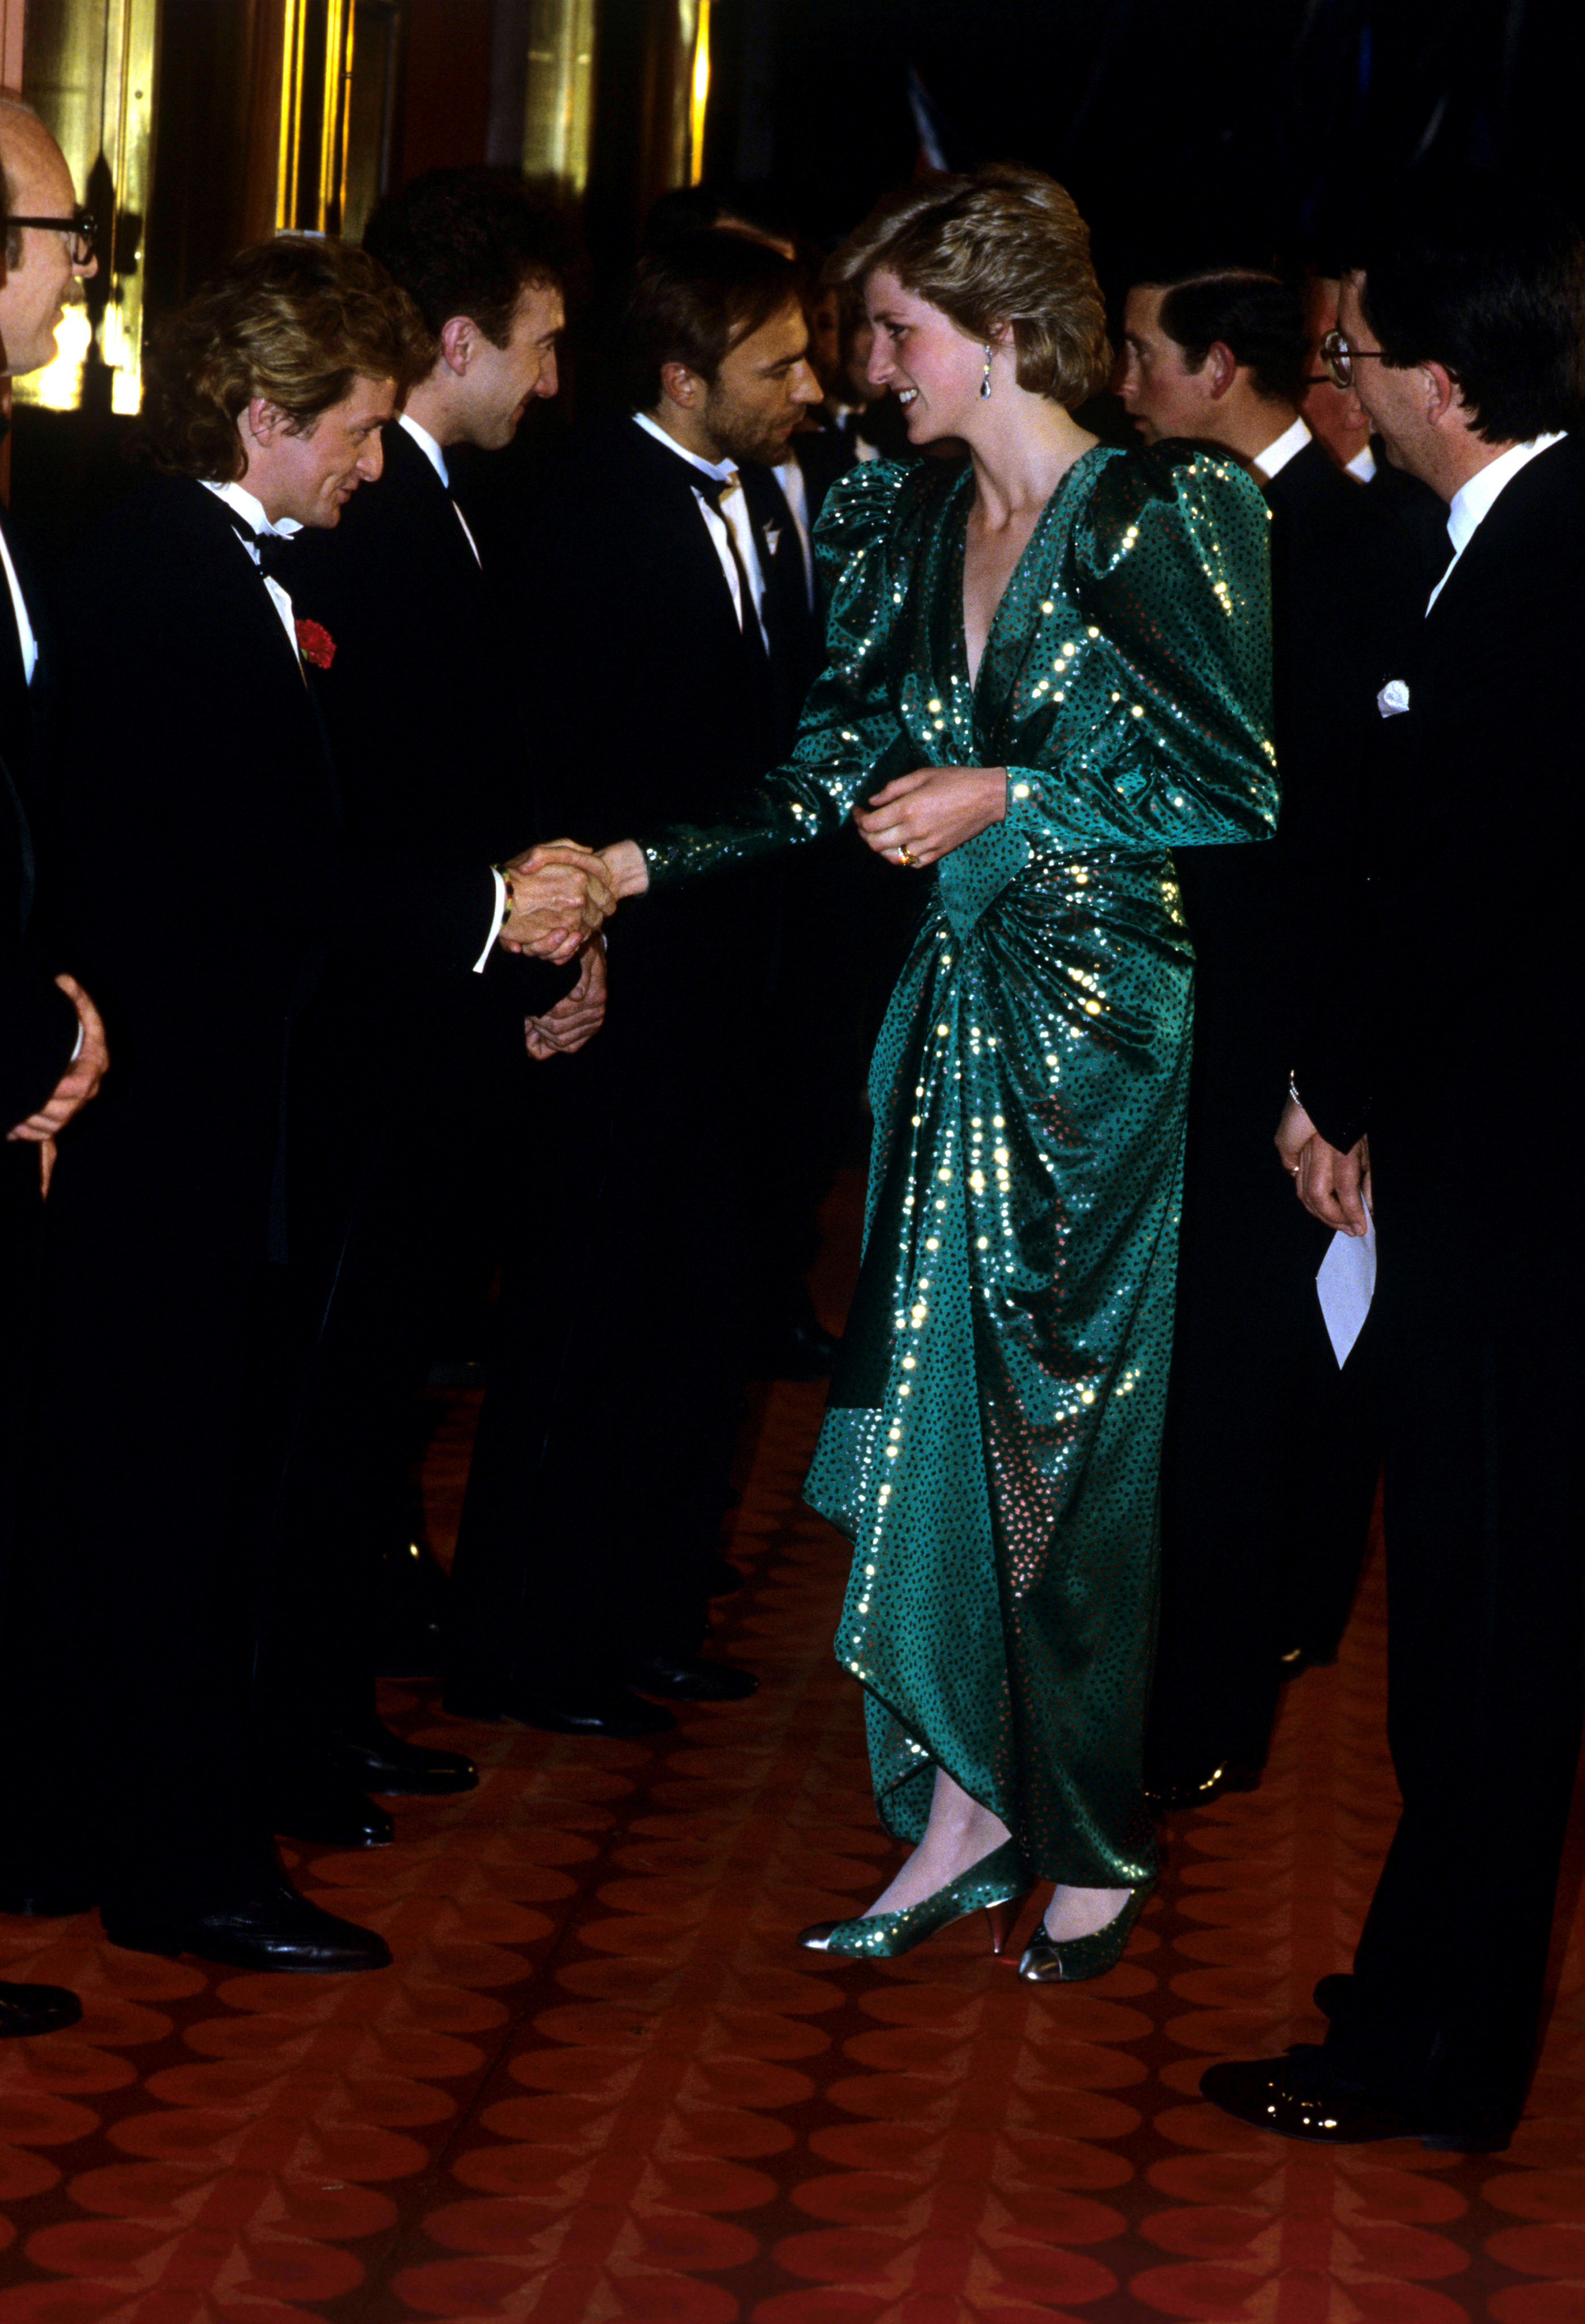 Princess Diana in 1986